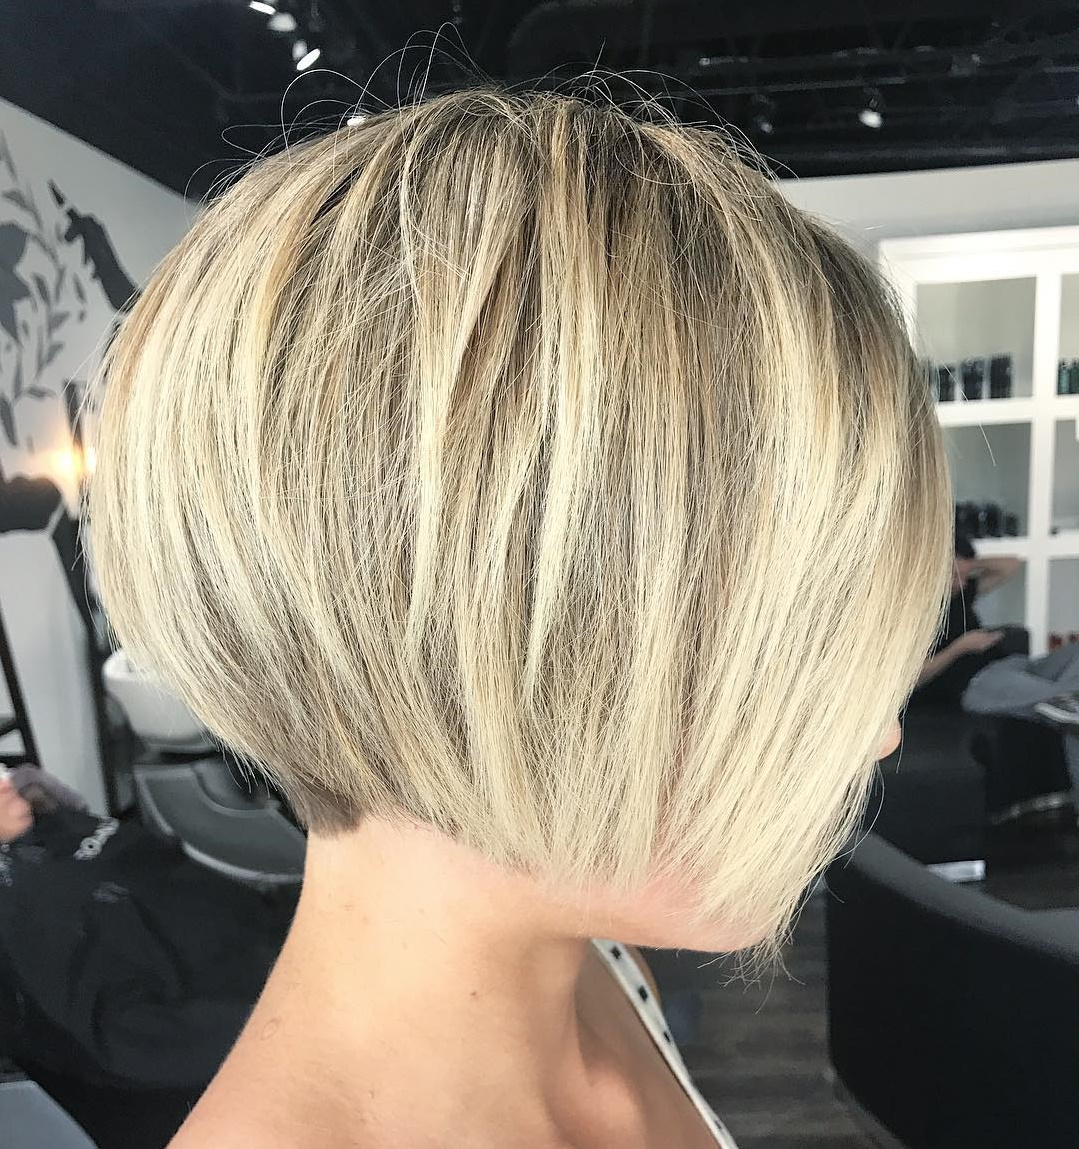 50 Brand New Short Bob Haircuts And Hairstyles For 2021 Hair Adviser